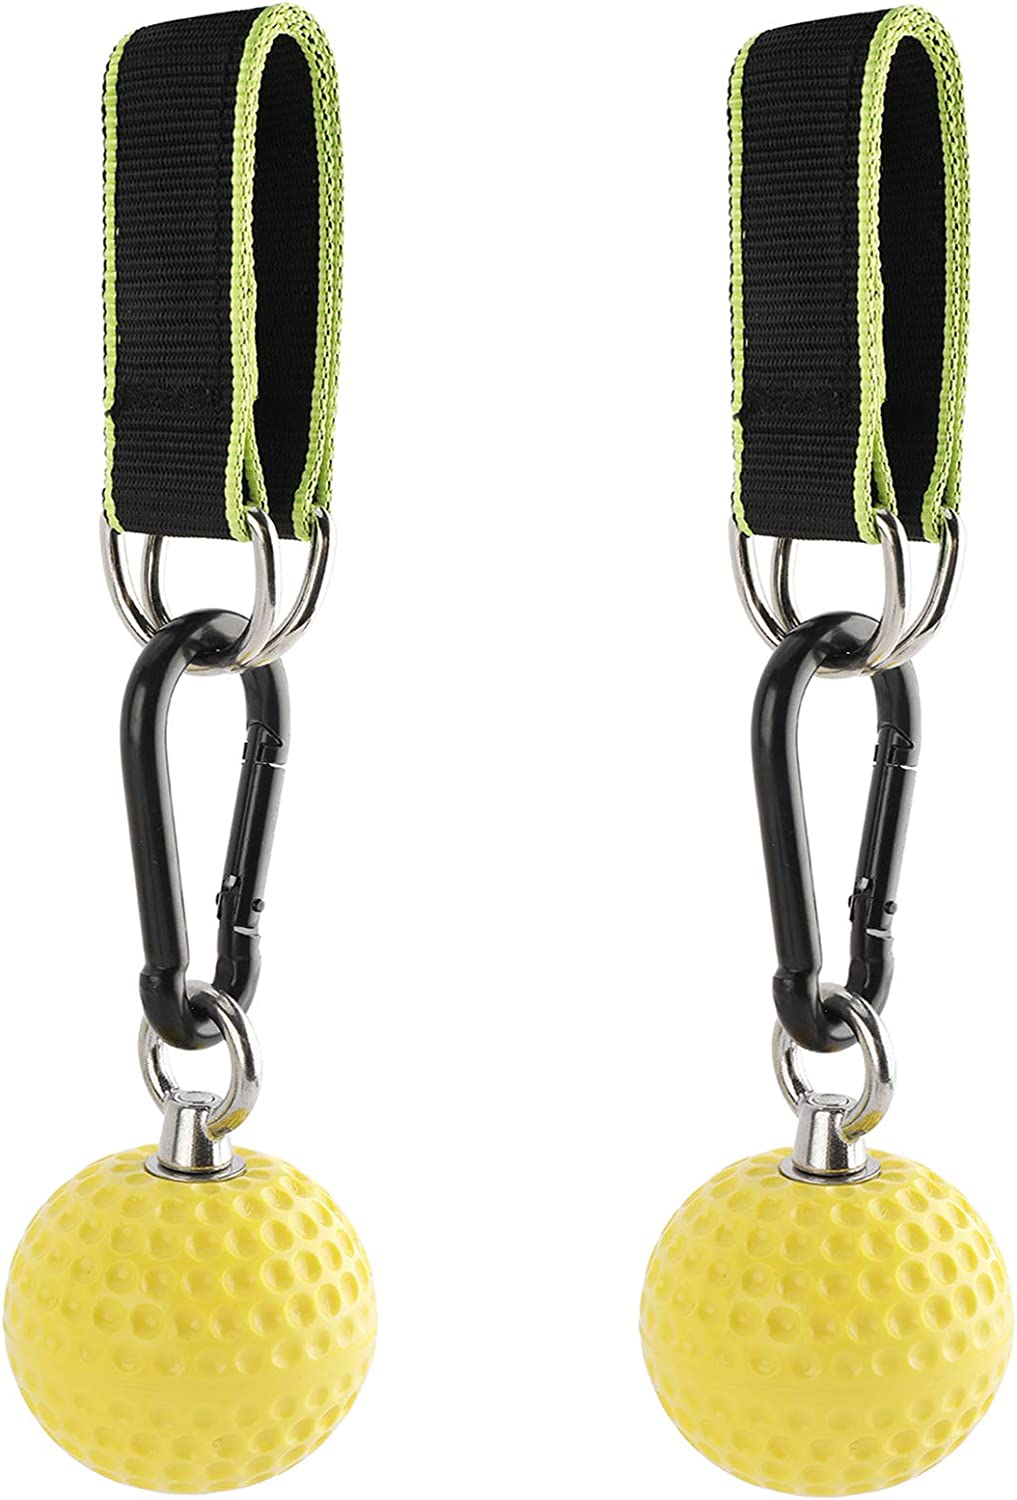 Sparkfire Safety and trust Climbing Pull Up Power Ball No Straps 4 years warranty Hold with Grips